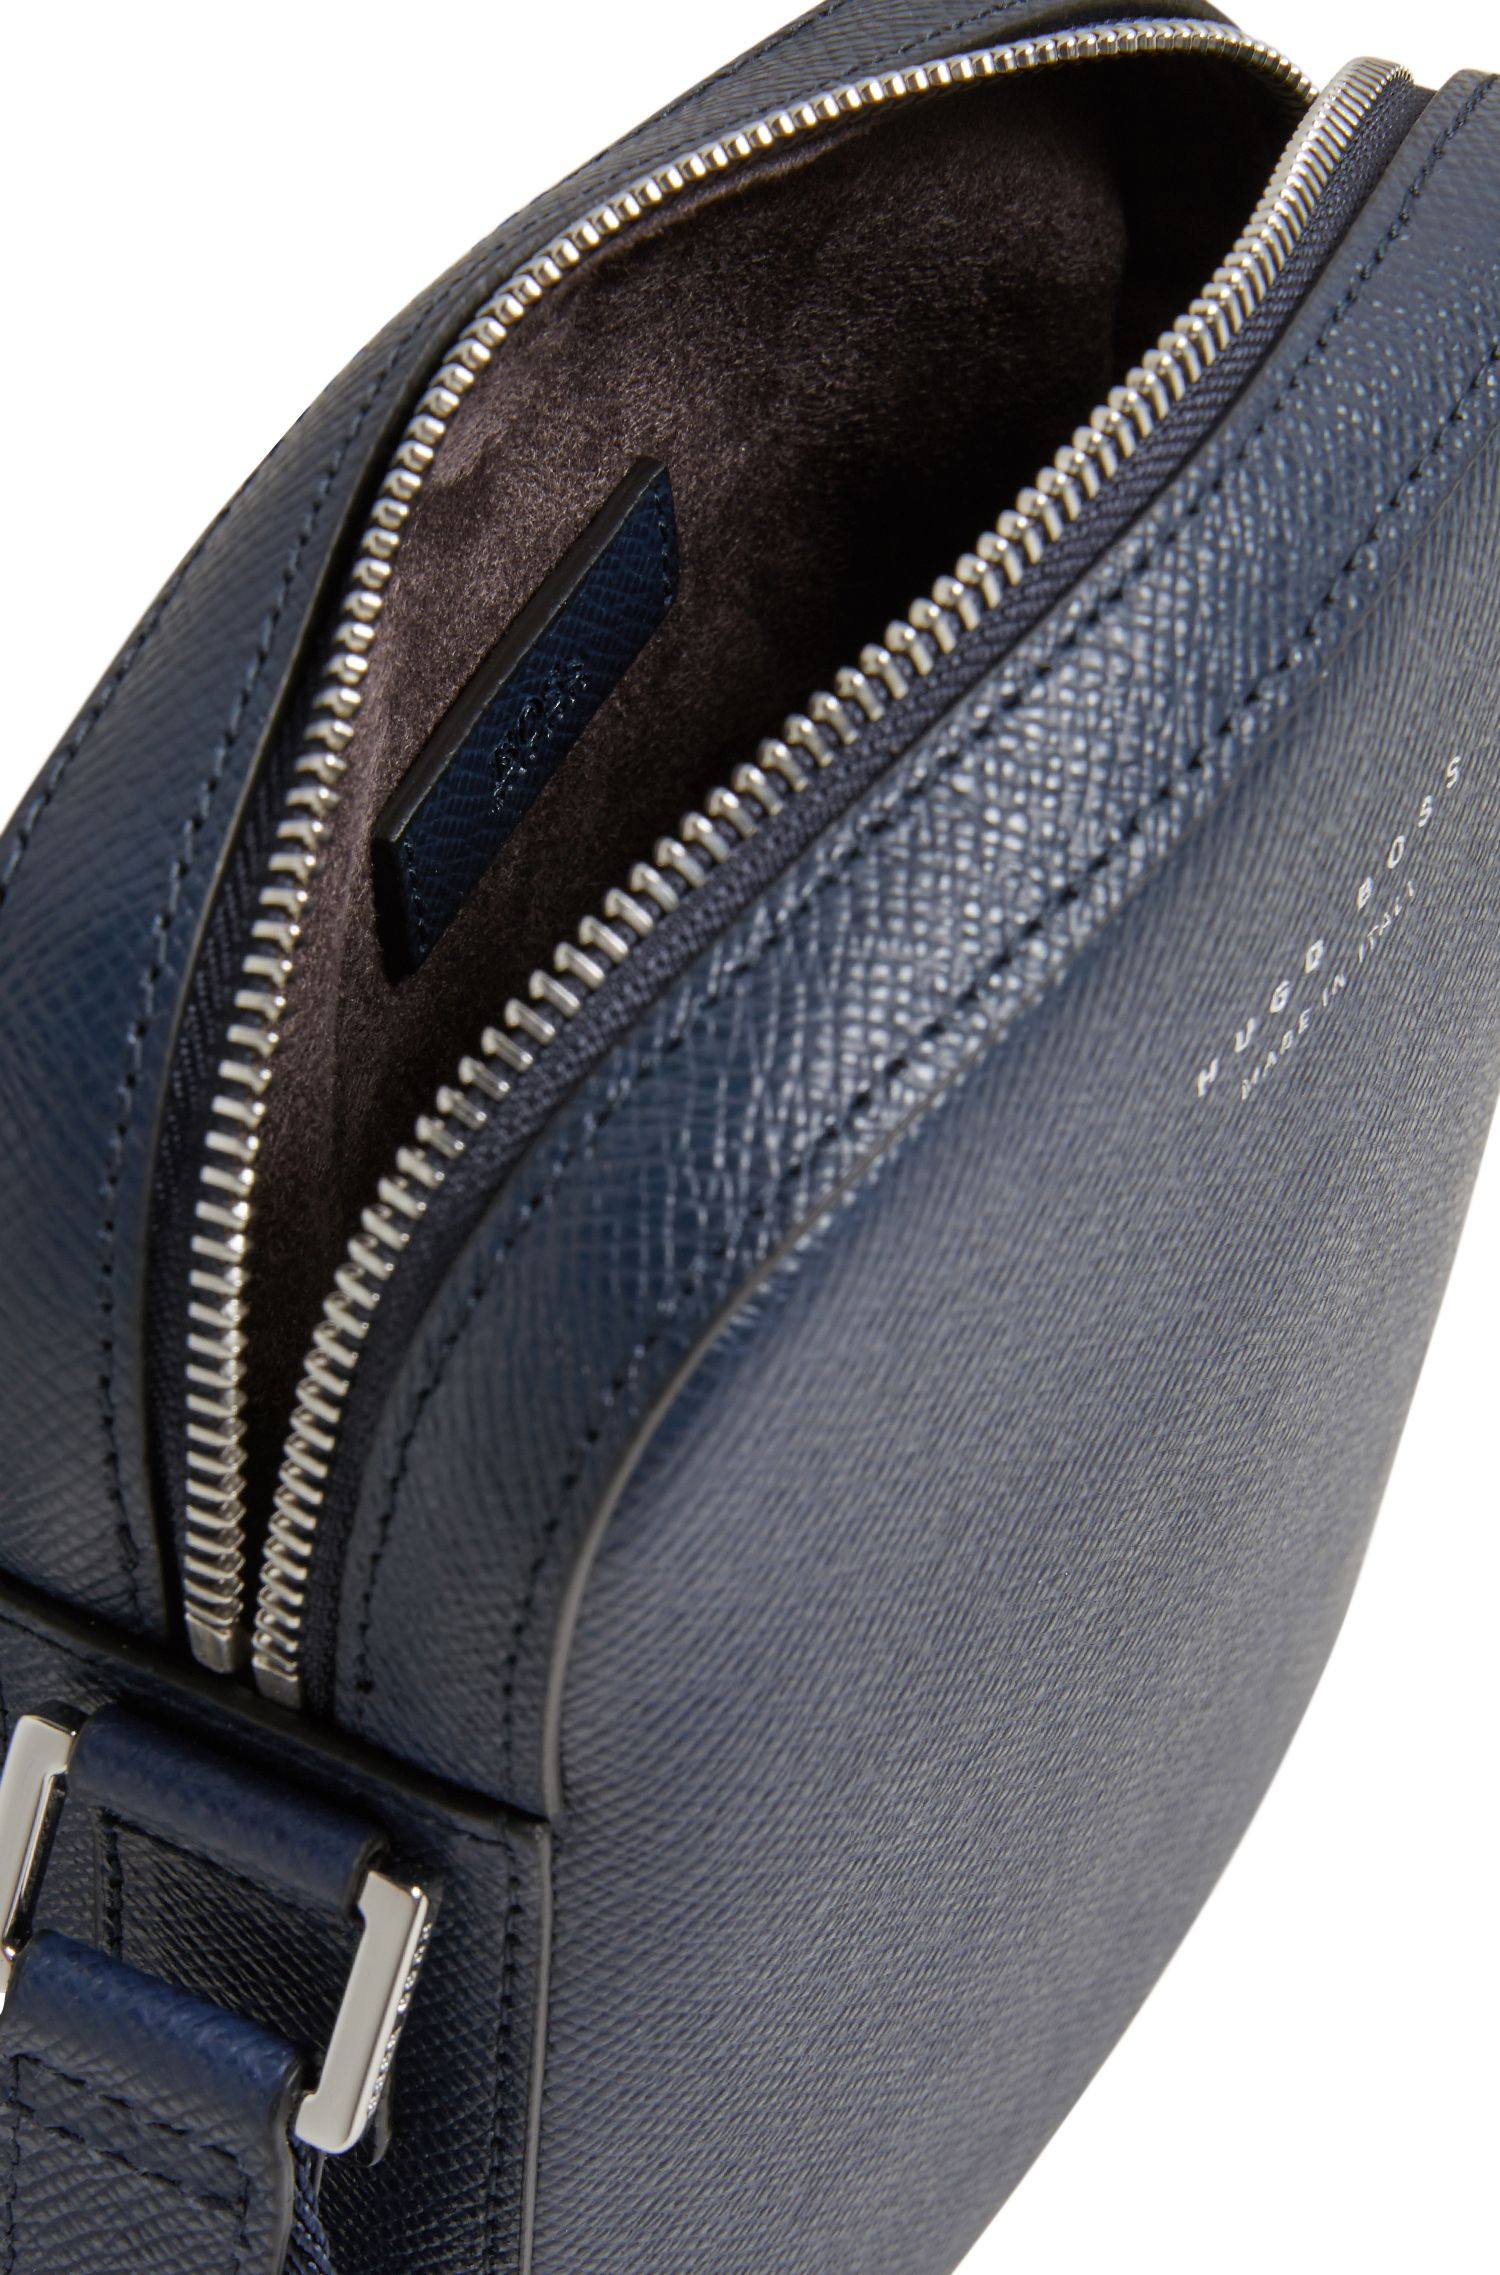 Crossbody-tas van gestructureerd Italiaans leer uit de Signature Collection